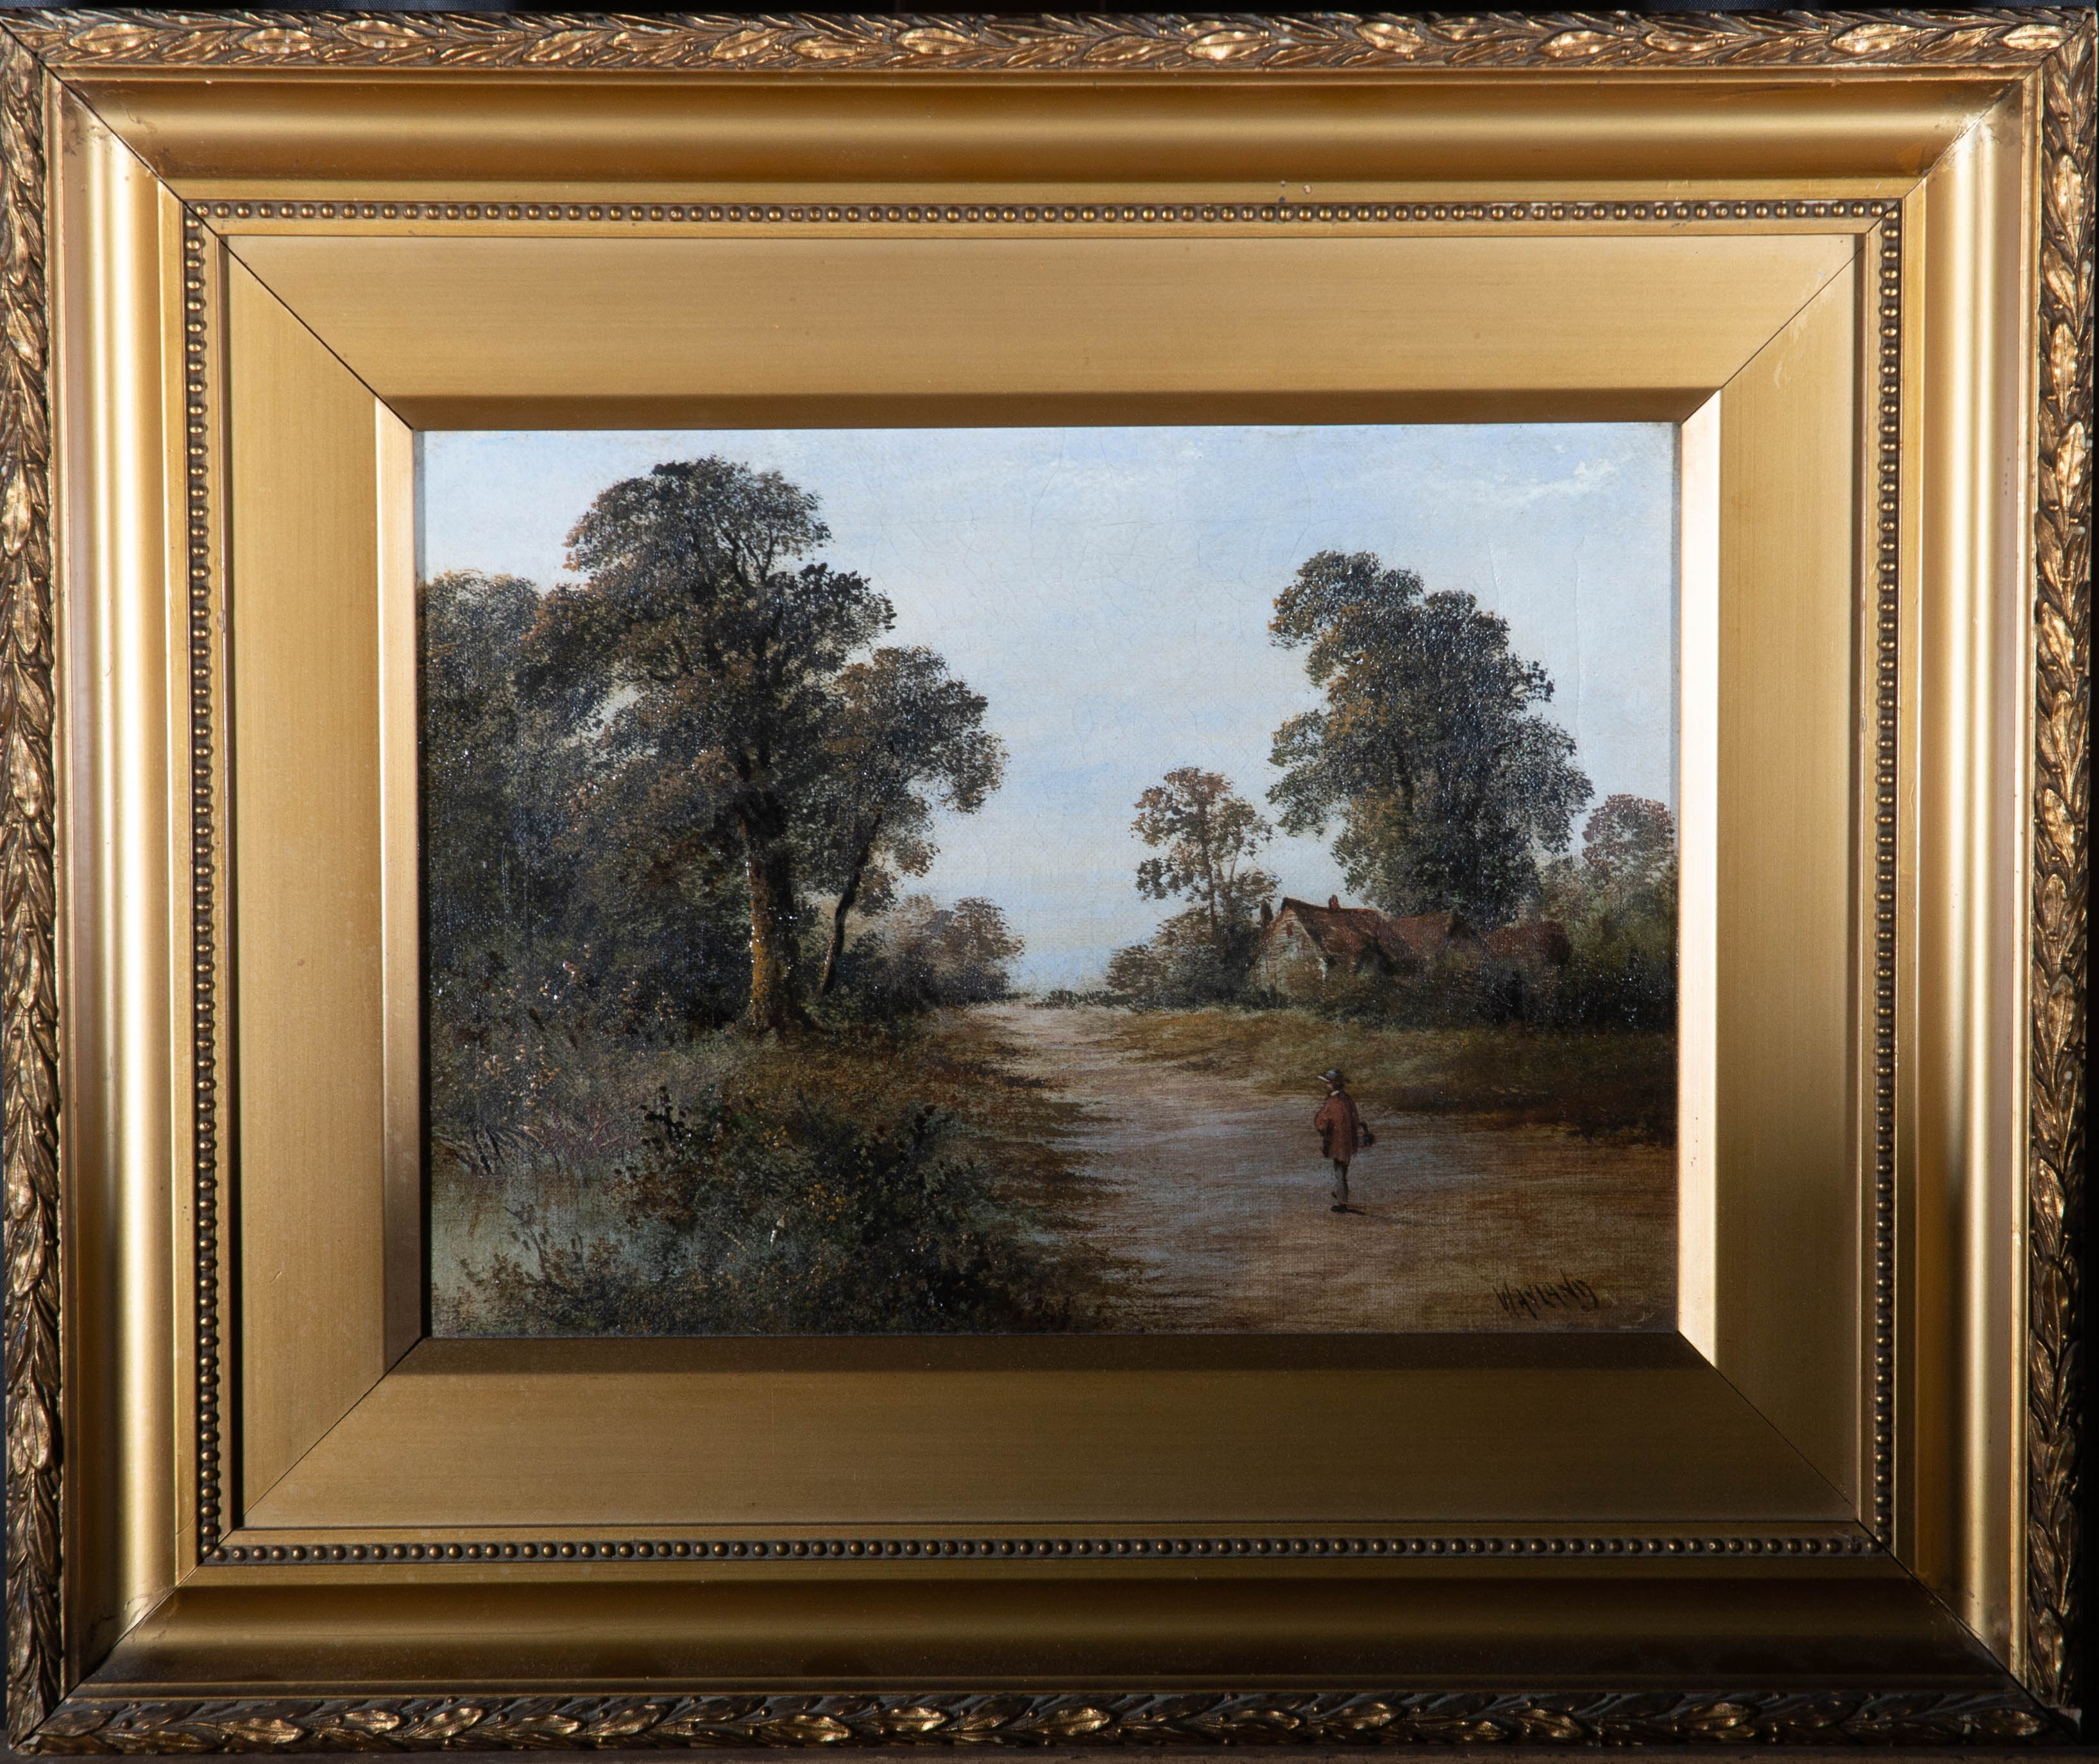 Wayland - Early 20th Century Oil, A Rural Stroll